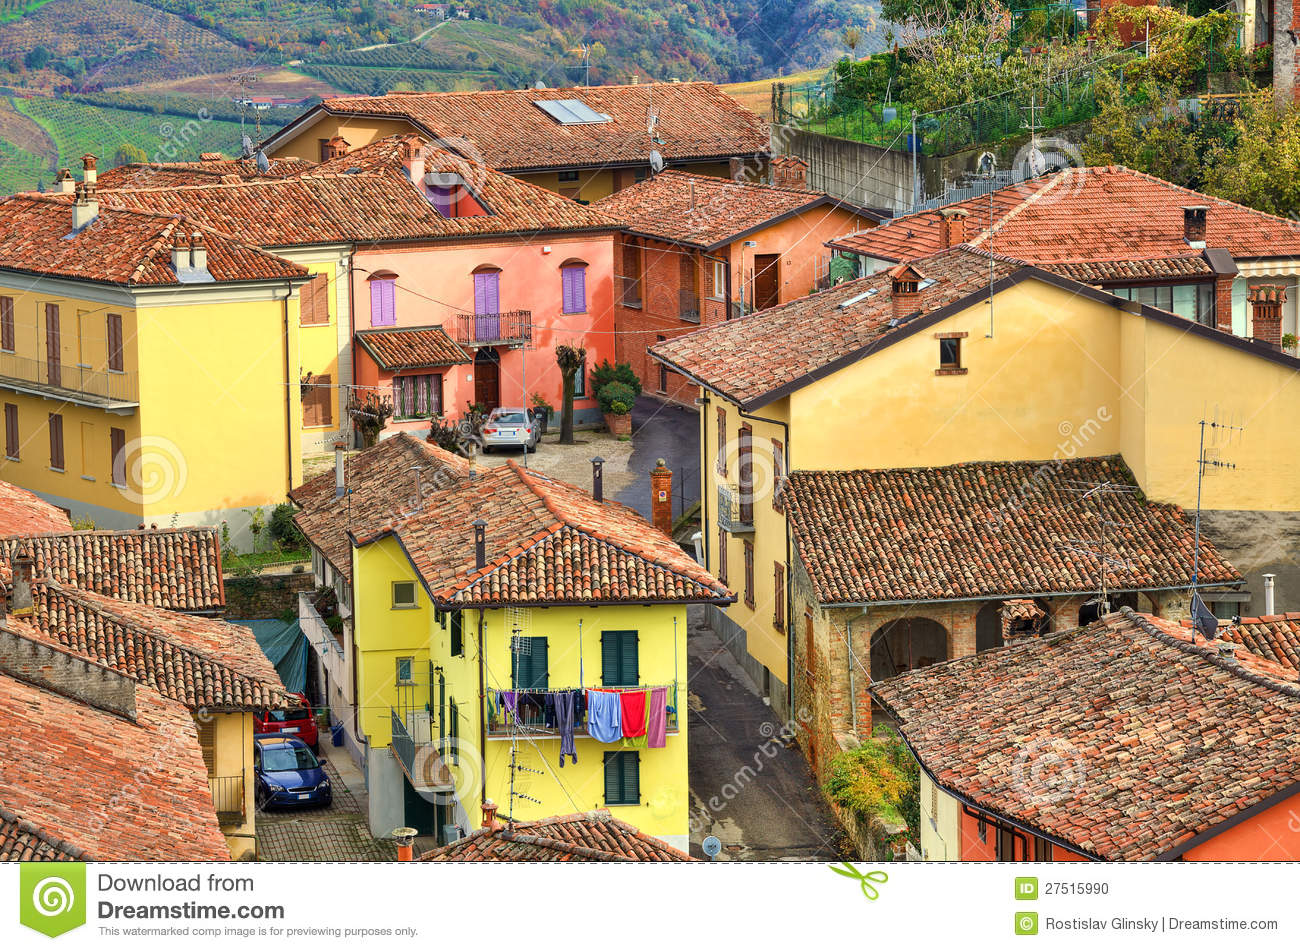 Maisons italiennes diano d 39 alba italie photo stock for Maison italienne architecture